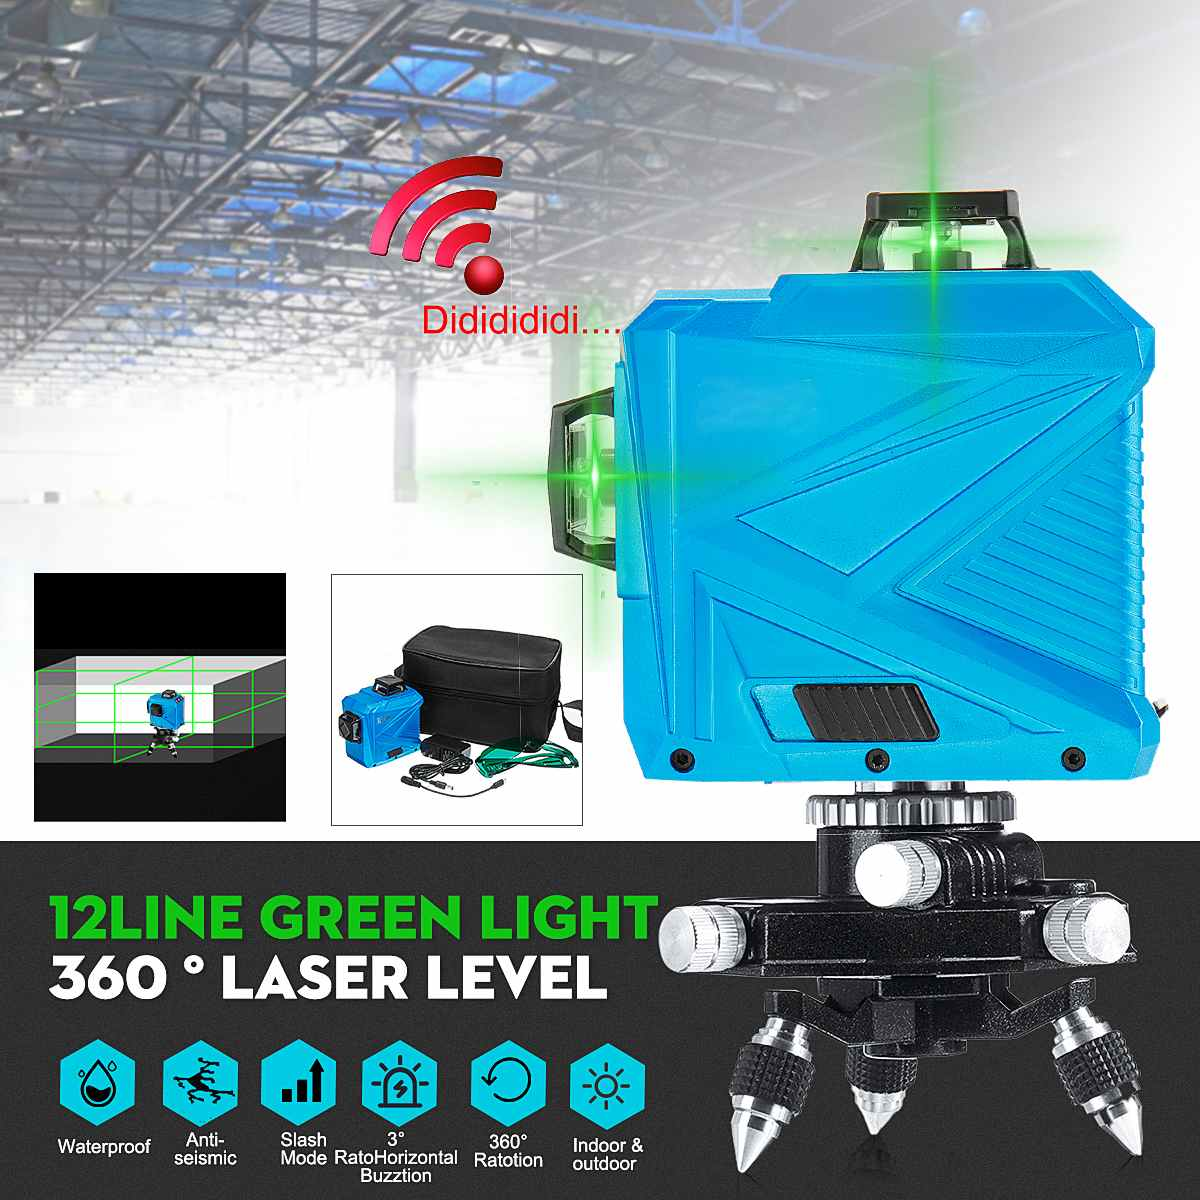 3D 12 Line Green Light Laser Level Auto Self Leveling 360 Rotary Measure Cross  Wall Mounted Bracket Tripod Base  T-shaped3D 12 Line Green Light Laser Level Auto Self Leveling 360 Rotary Measure Cross  Wall Mounted Bracket Tripod Base  T-shaped